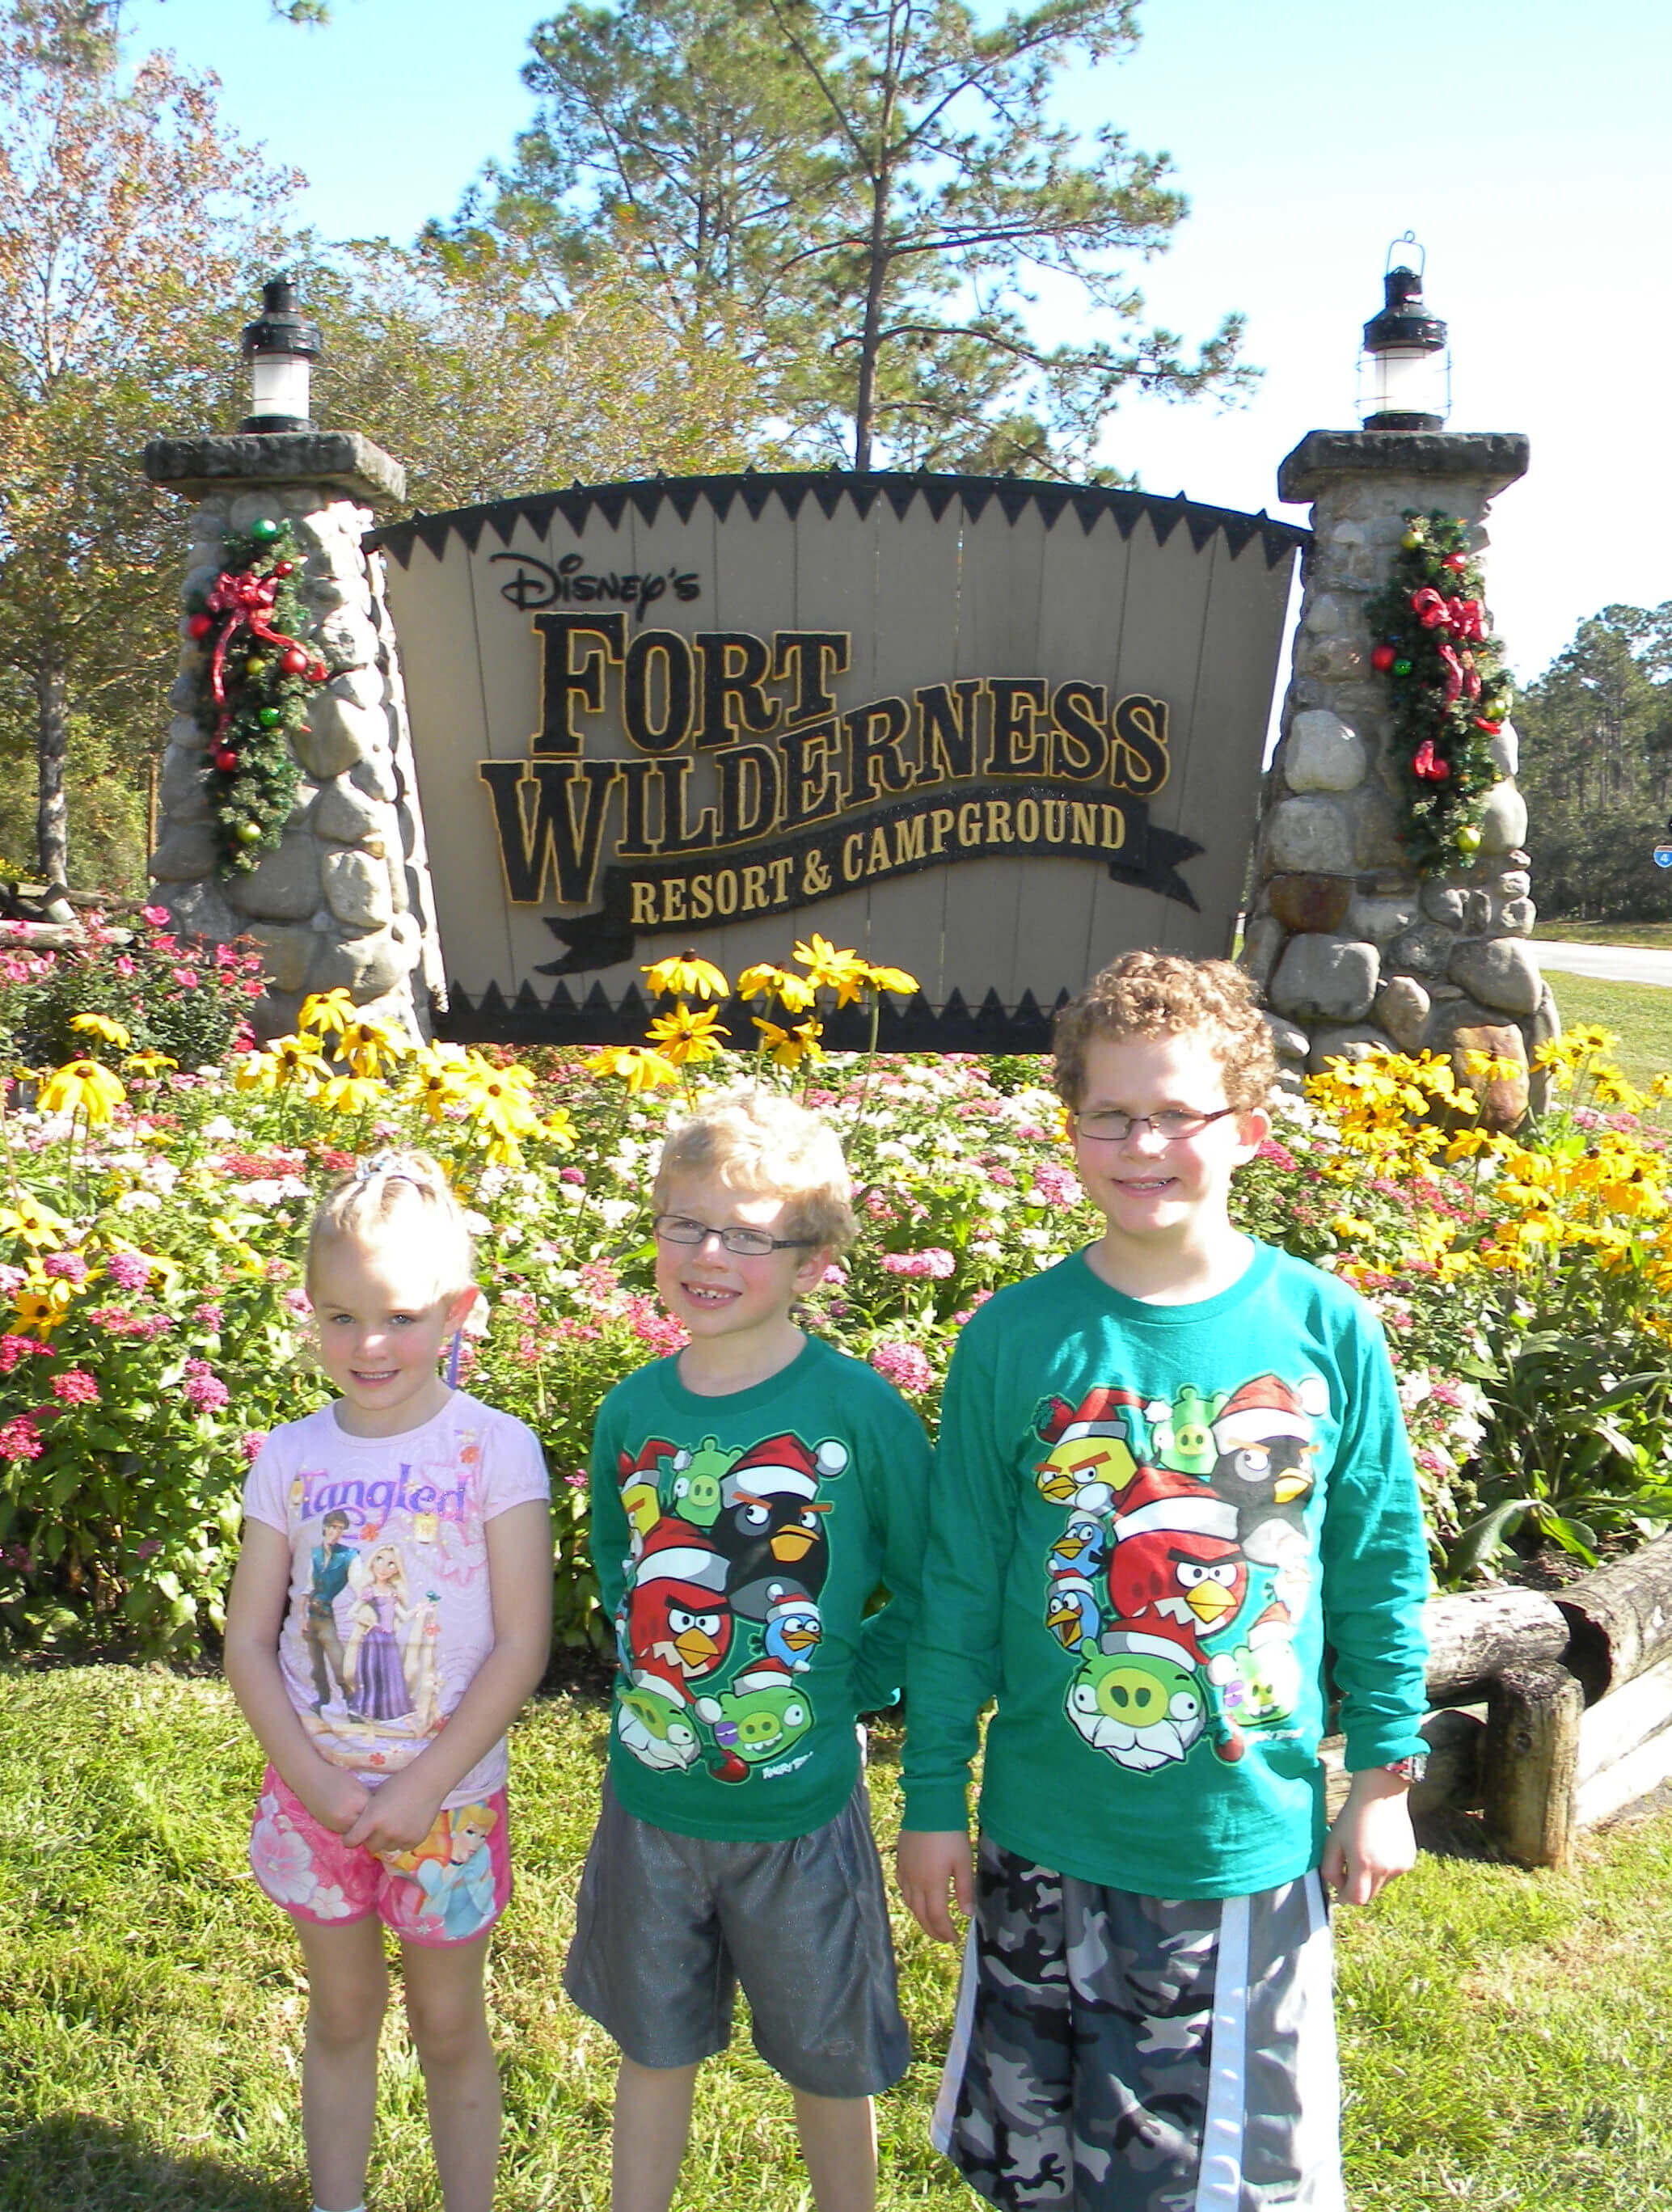 Disney Campground - Fort Wilderness camping